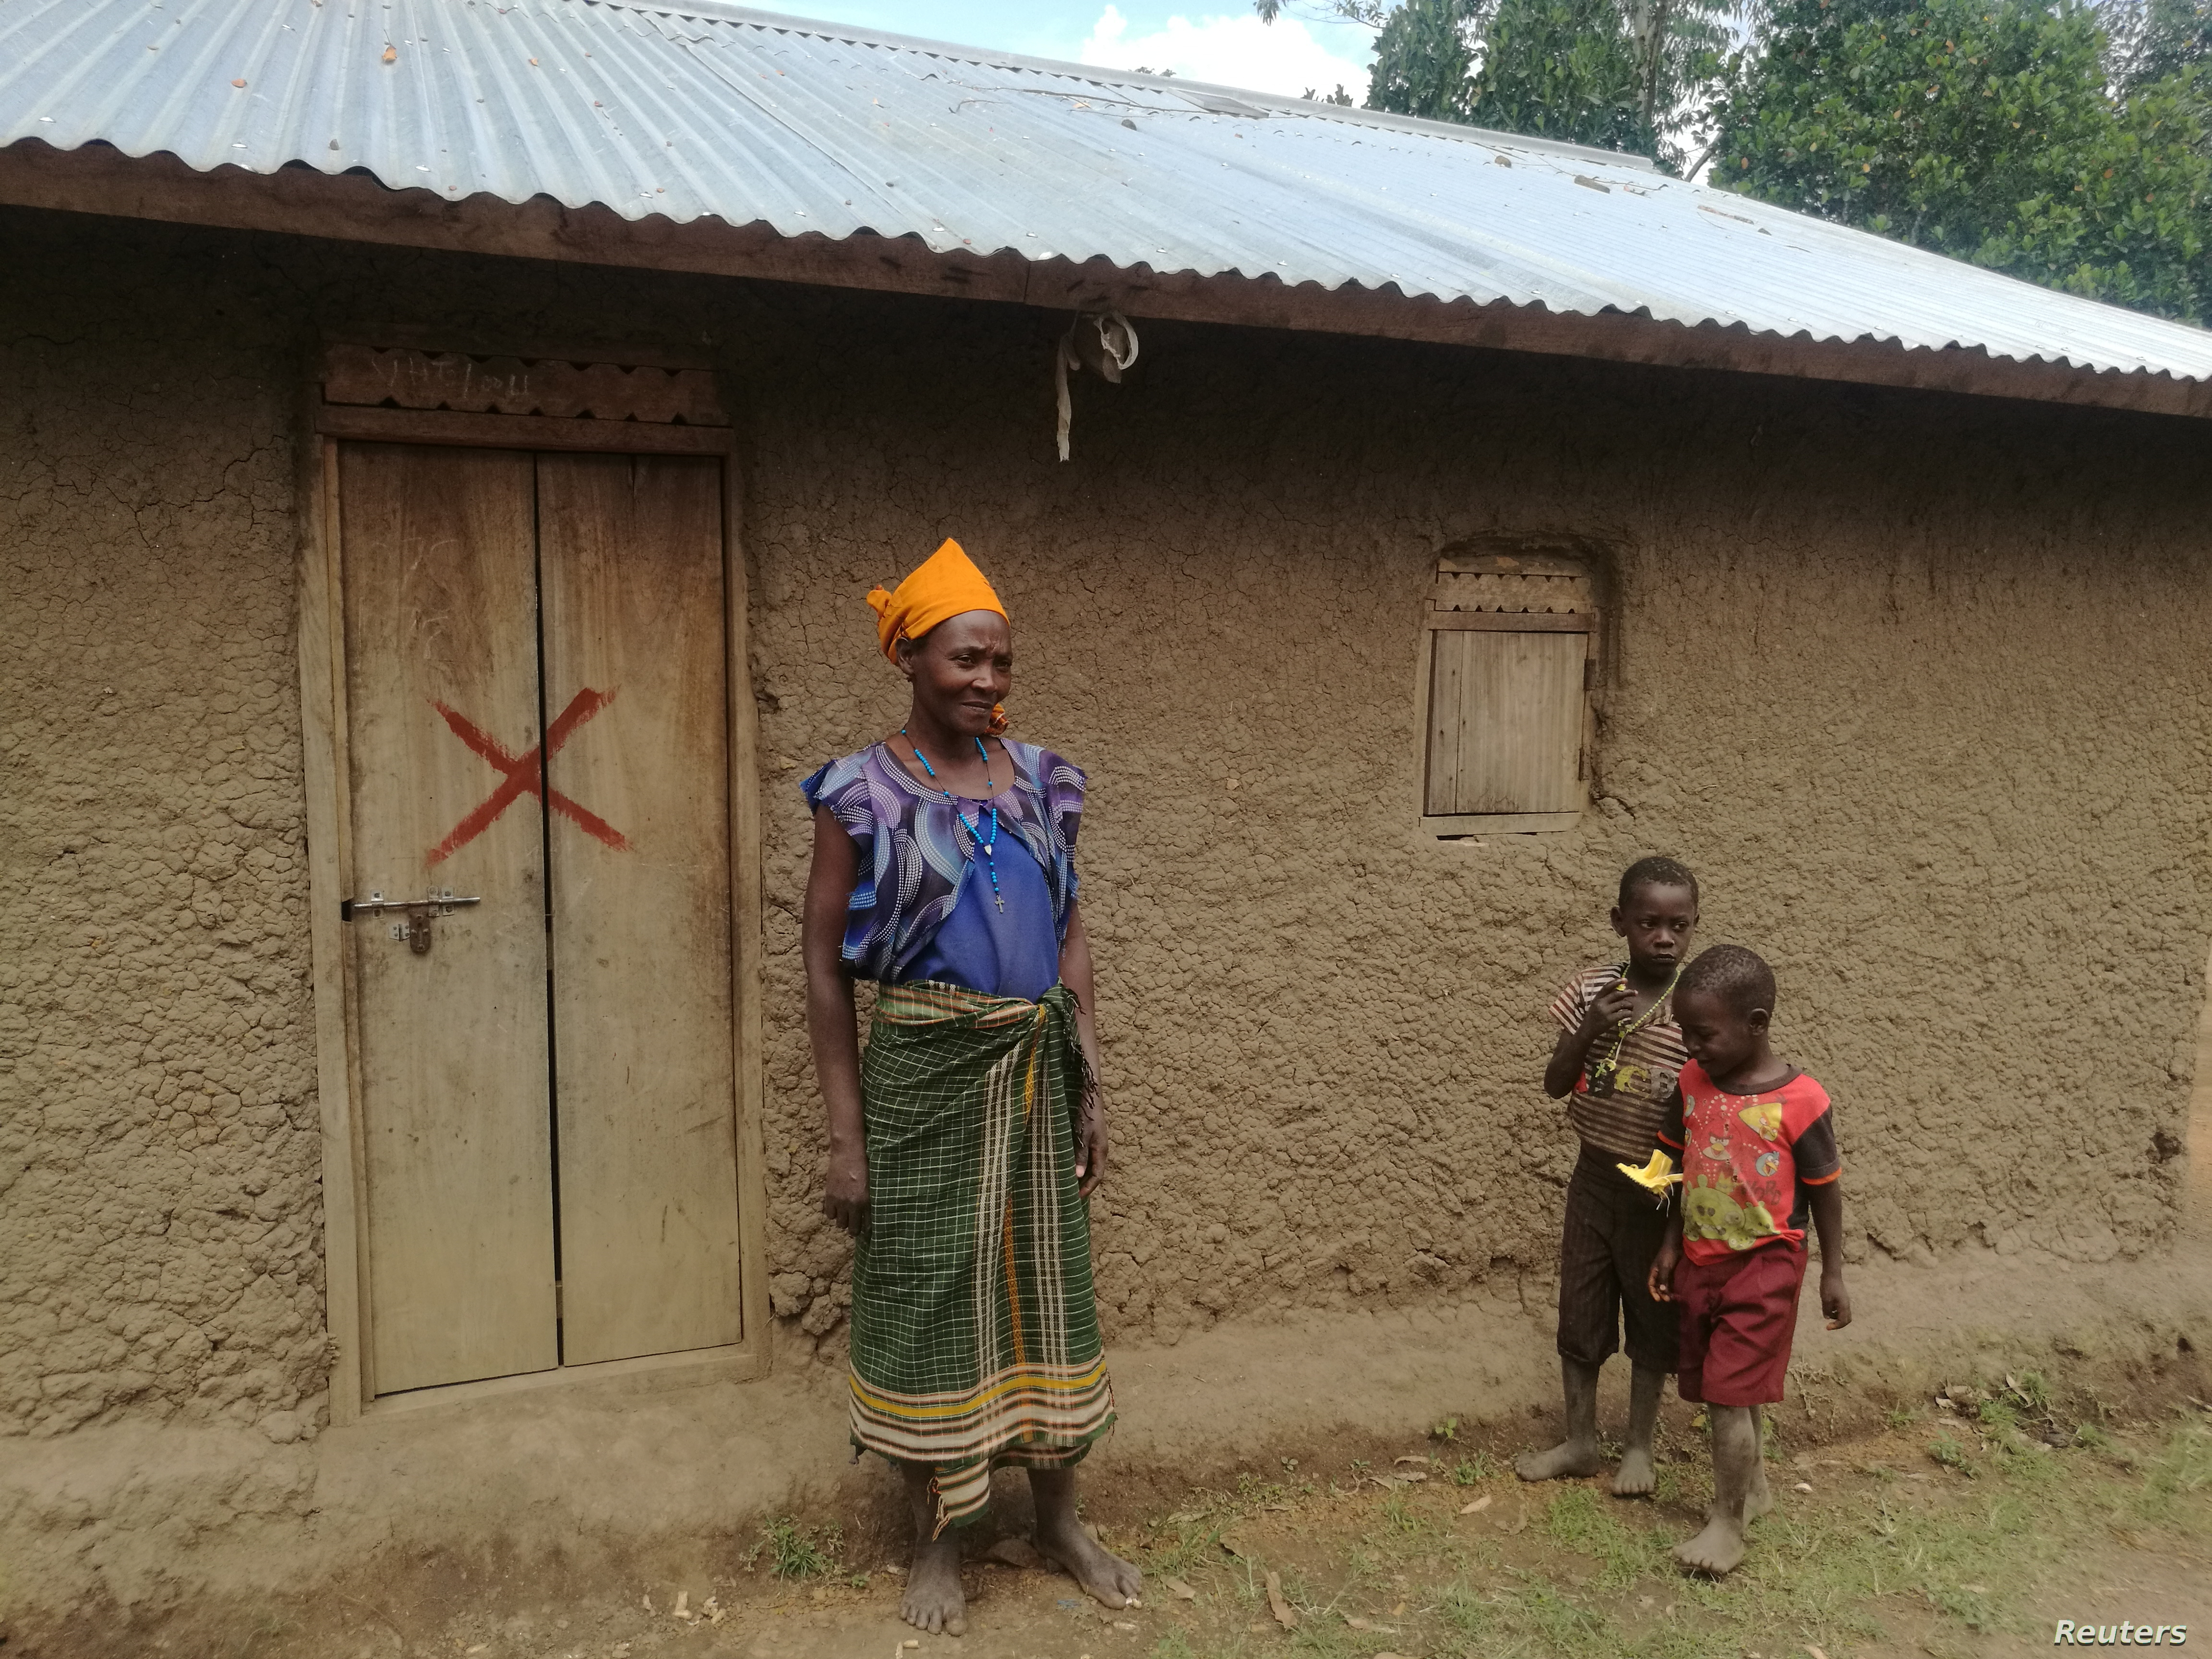 Jacinta Kyomukama and her grandchildren stand in front of her house marked for demolition for an oil pipeline in Kyakatemba village, Hoima District, Uganda, July 14, 2018.